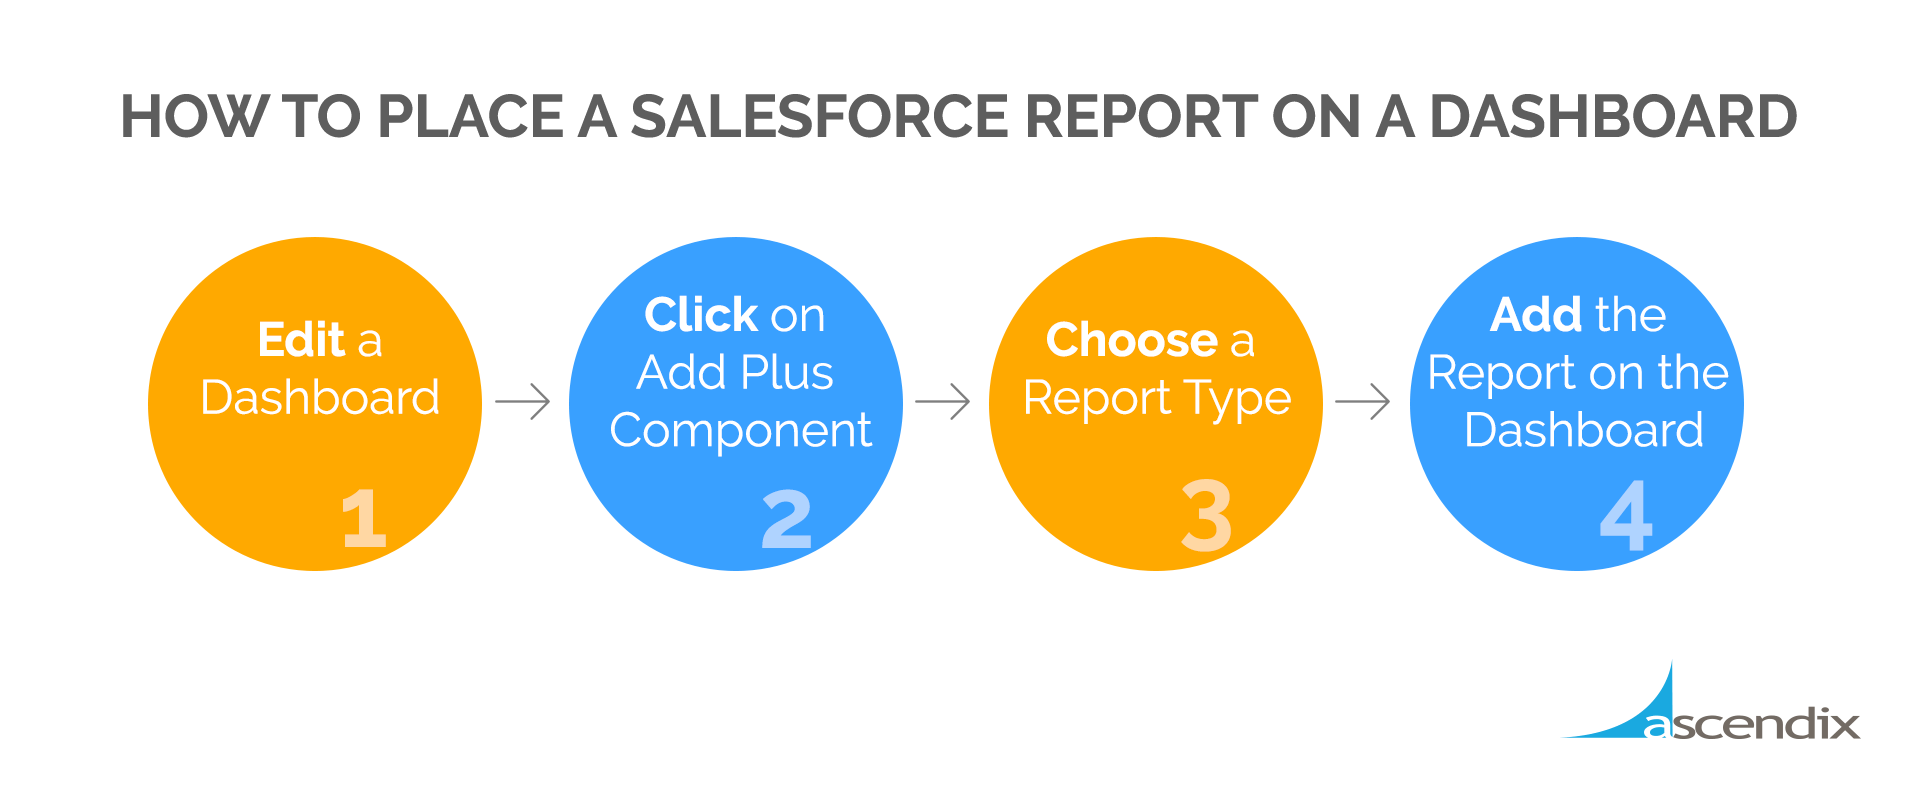 How to Place a Salesforce Report on a Dashboard